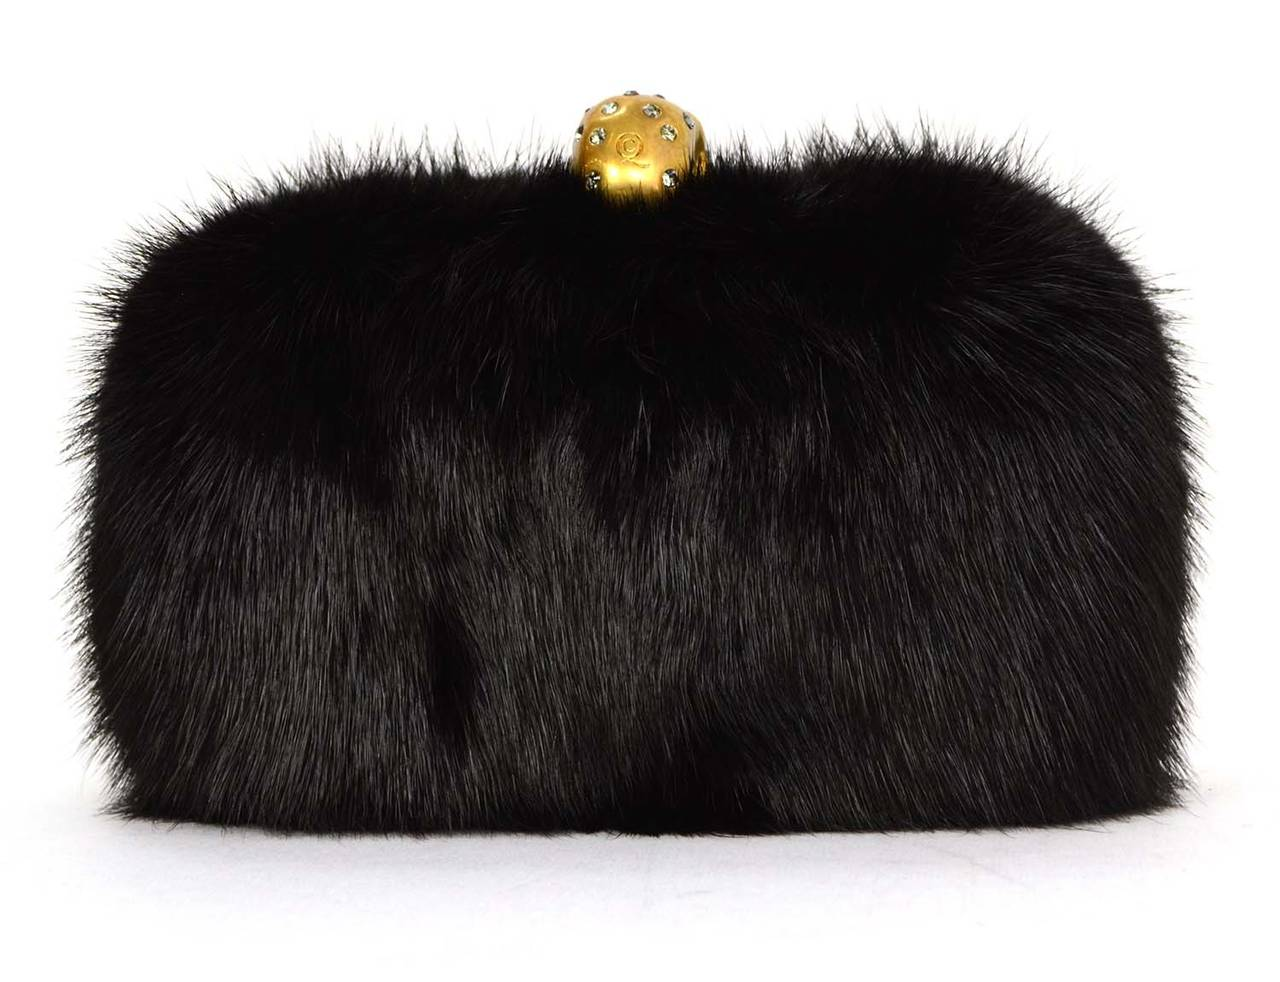 ALEXANDER MCQUEEN Black Fur Skull Clutch GHW In Excellent Condition For Sale In New York, NY